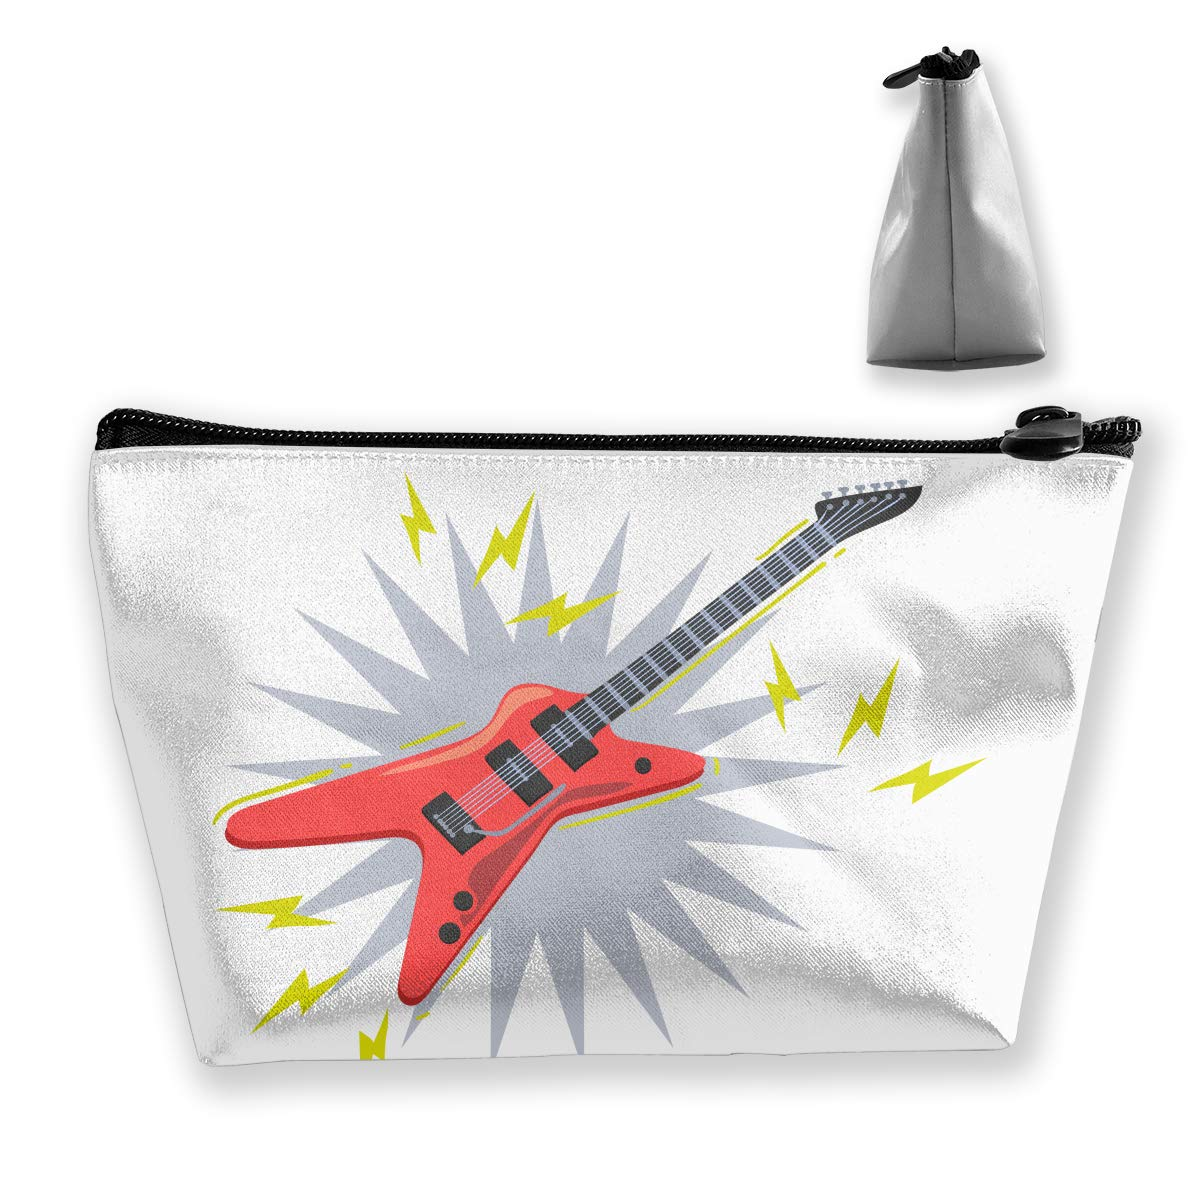 Trapezoid Toiletry Pouch Portable Travel Bag Guitar Clutch Bag